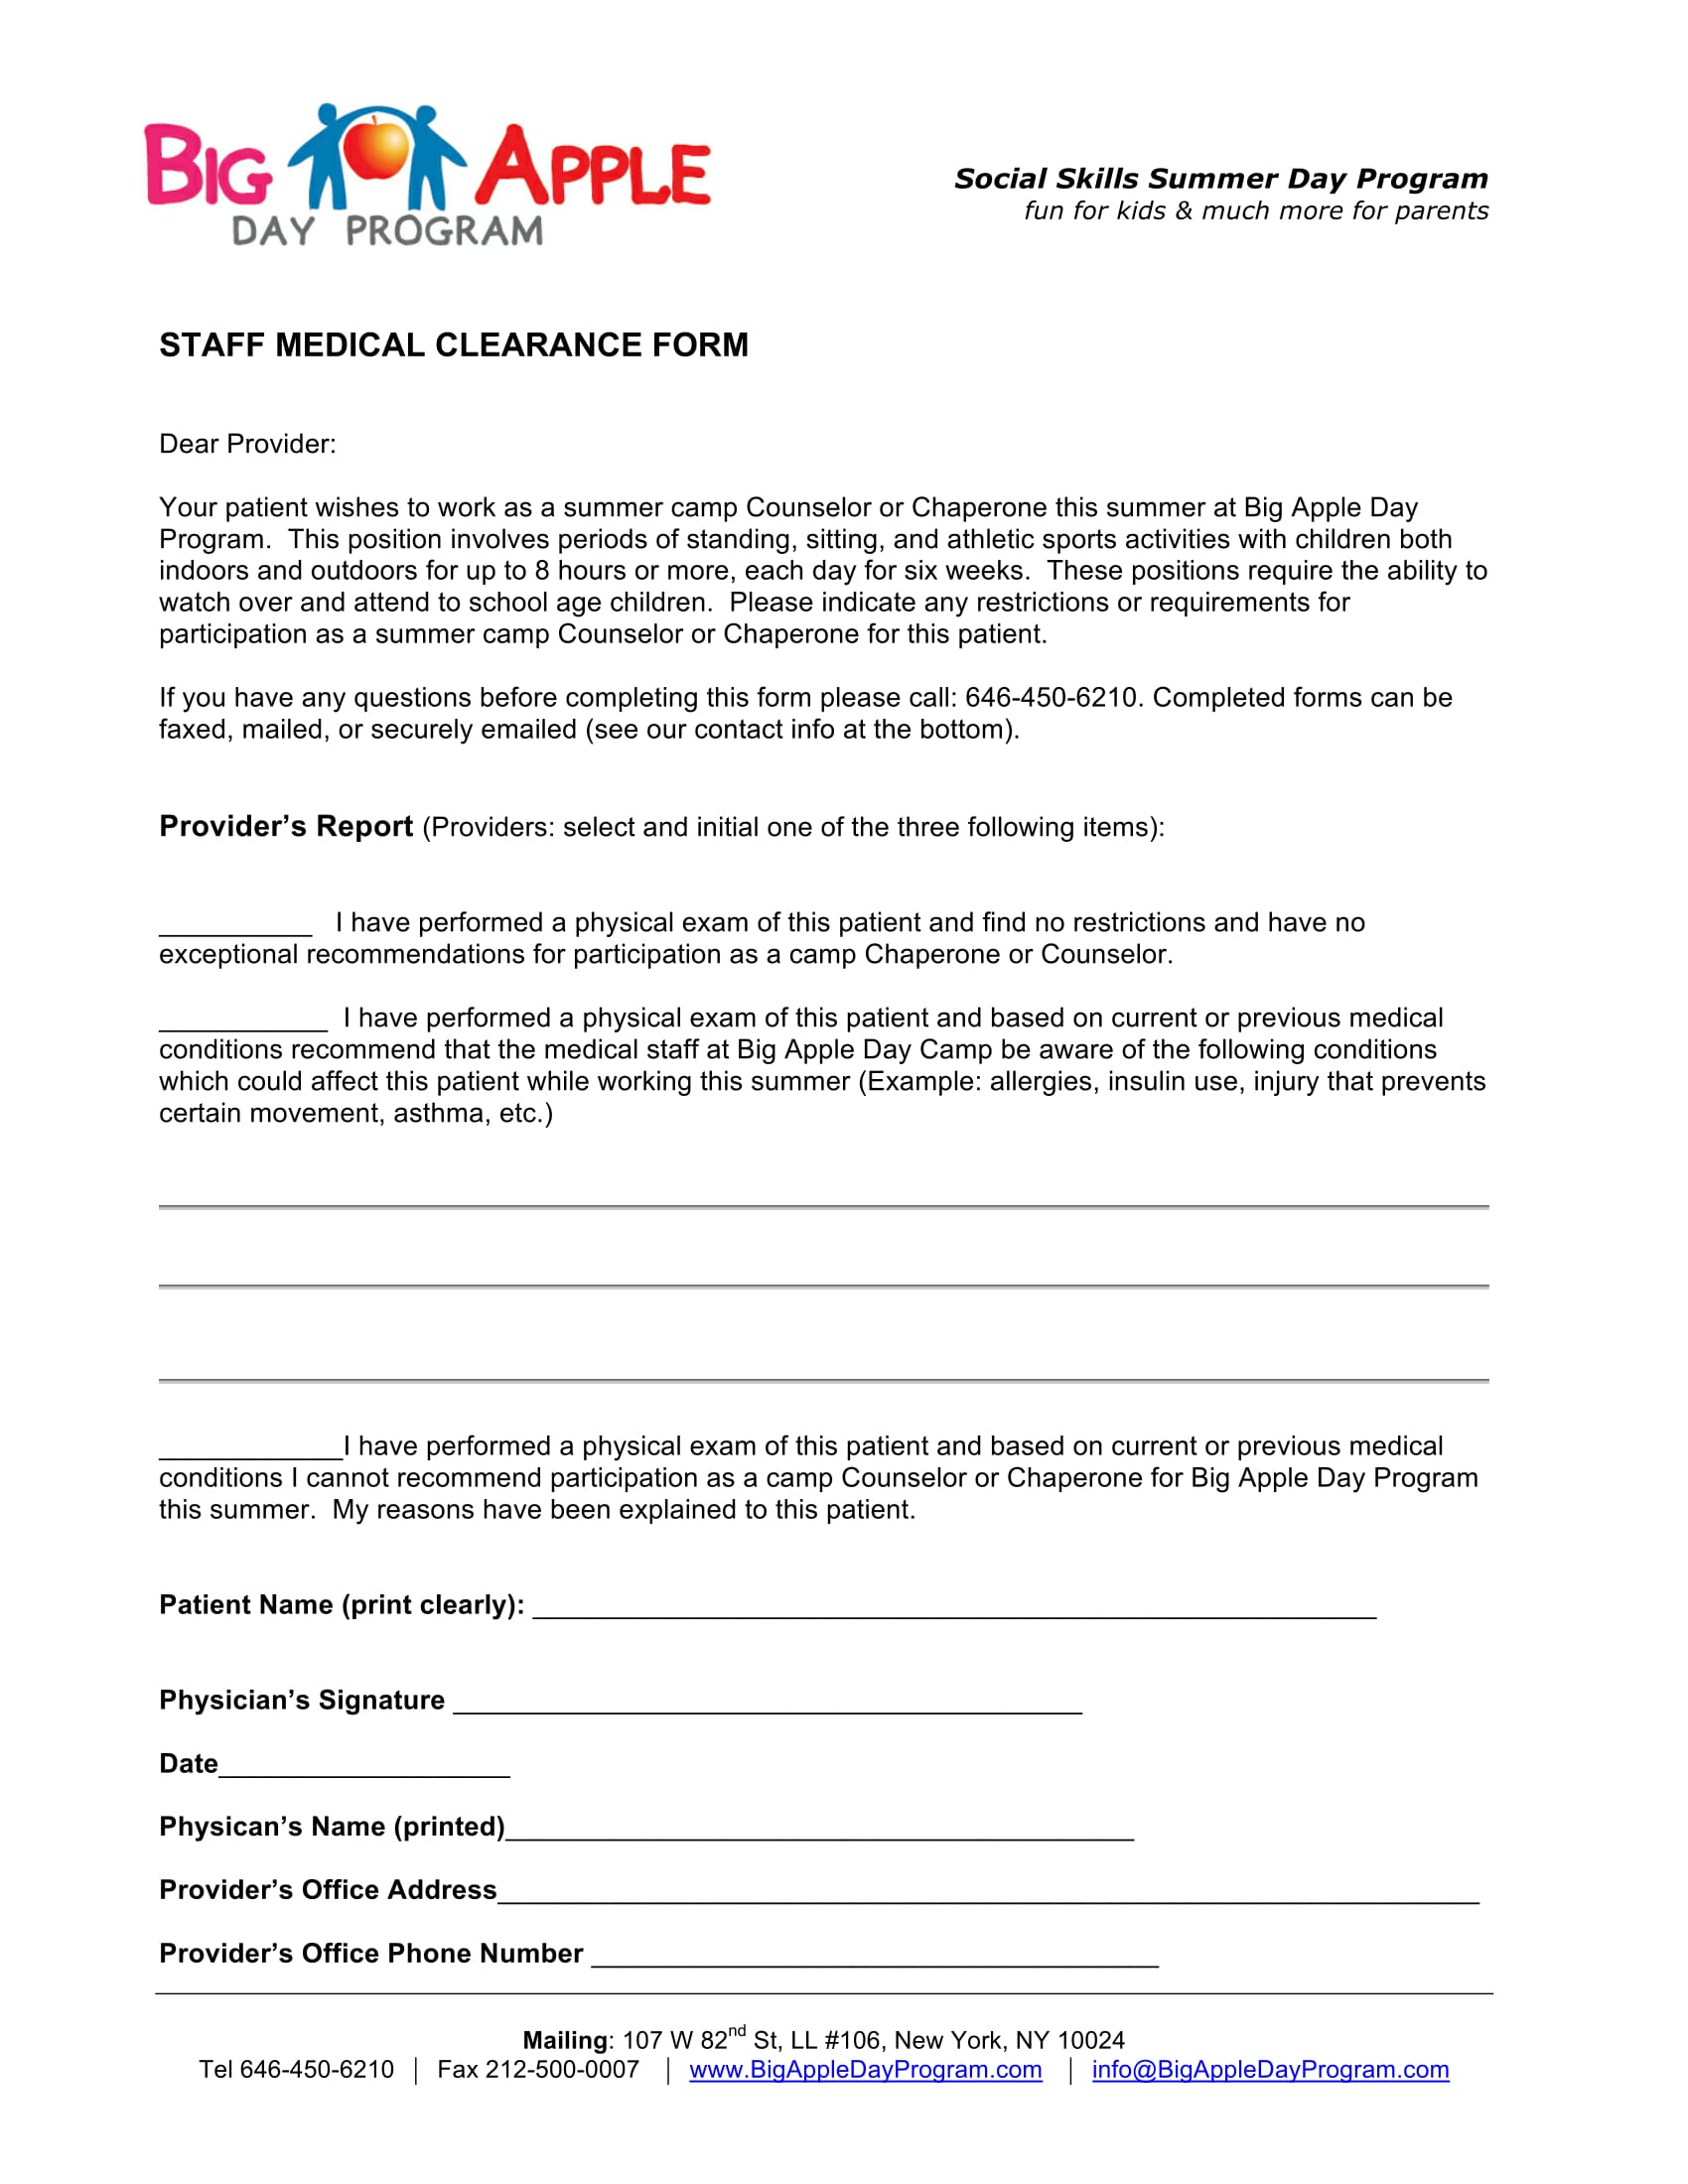 29+ Sample Medical Clearance Forms